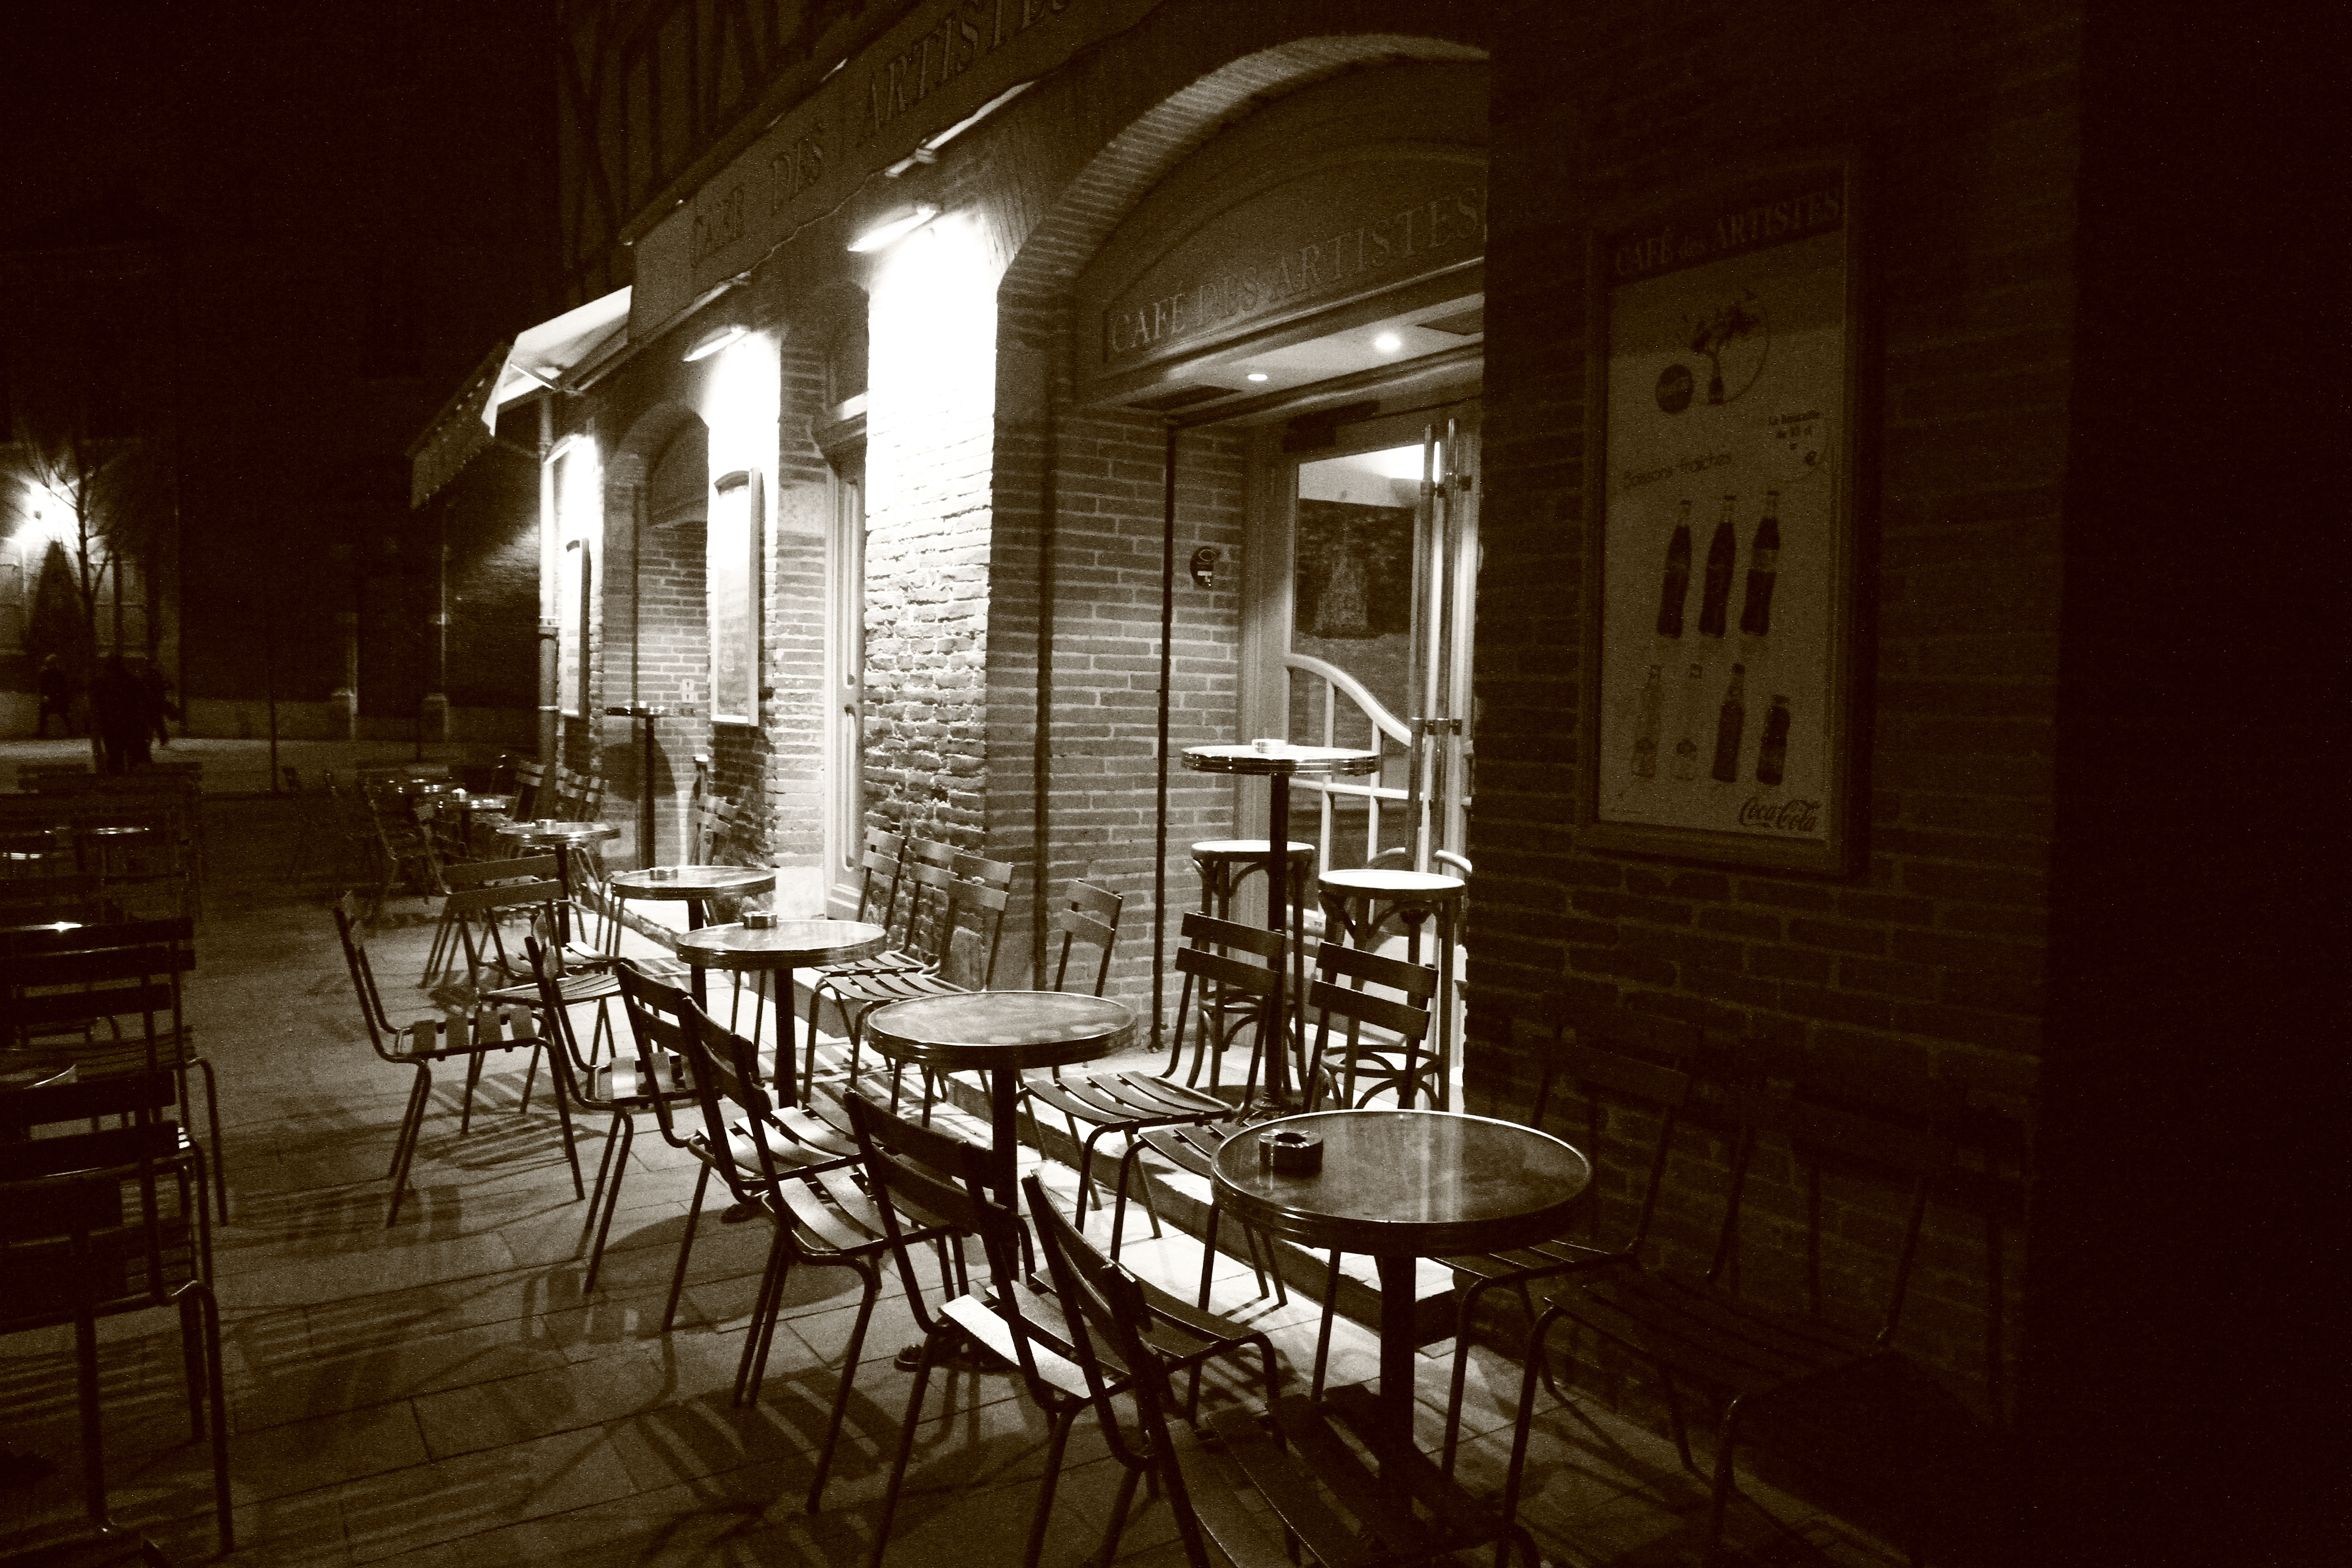 Toulouse-nuit-058